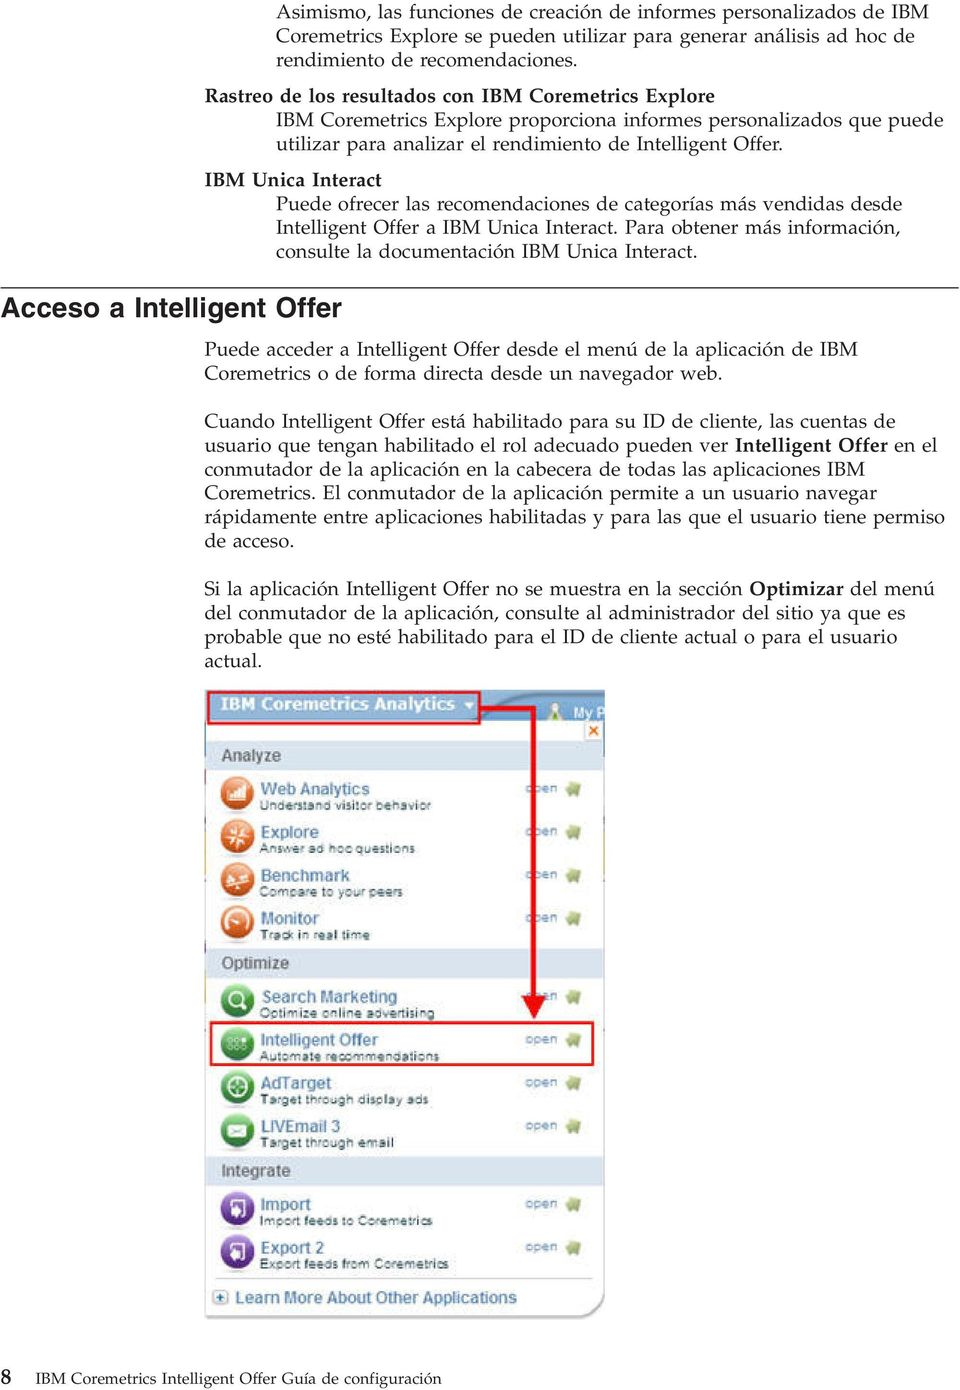 IBM Unica Interact Puede ofrecer las recomendaciones de categorías más endidas desde Intelligent Offer a IBM Unica Interact. Para obtener más información, consulte la documentación IBM Unica Interact.